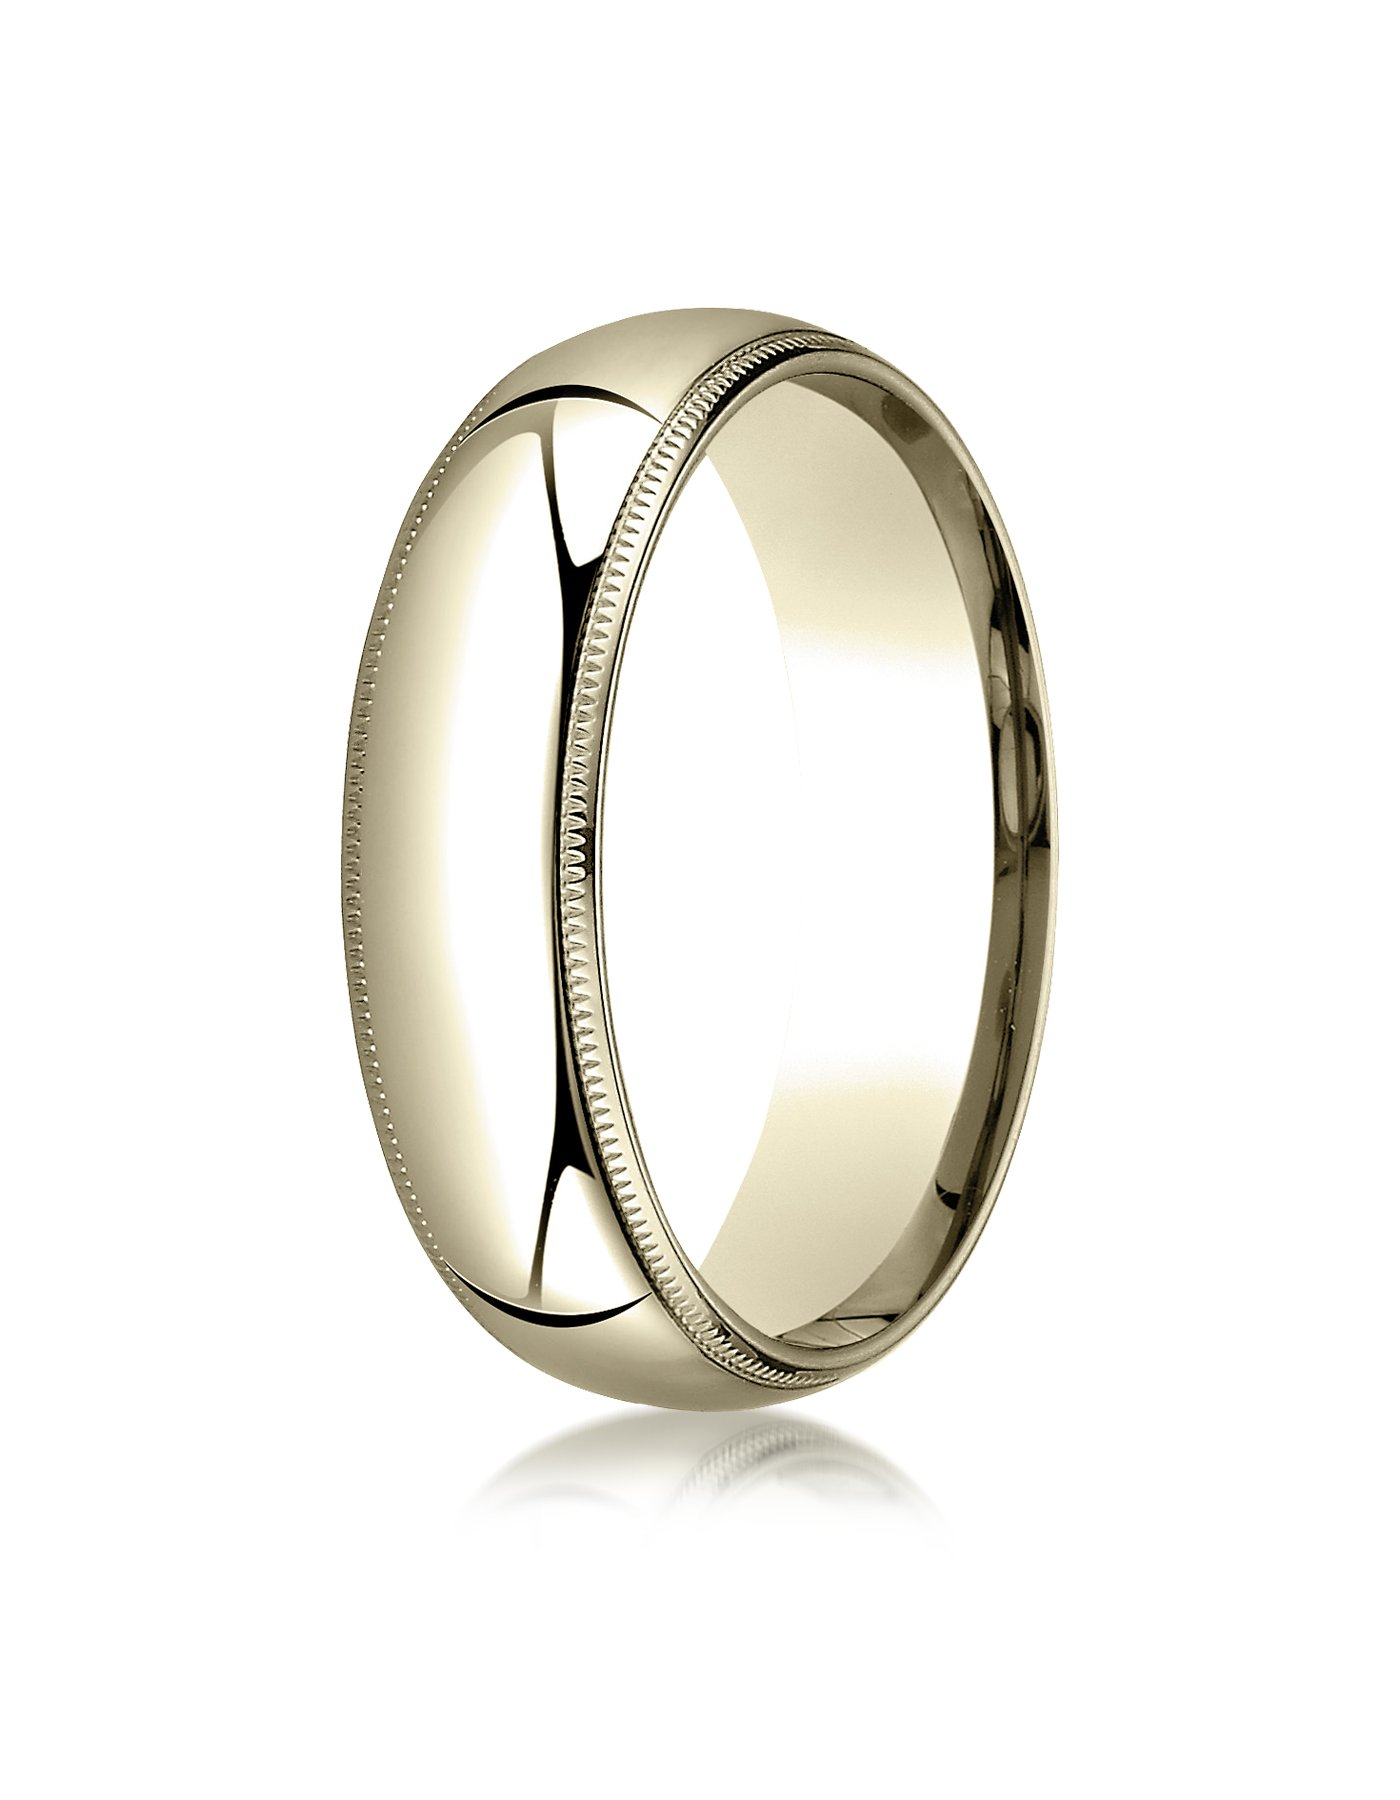 Women's 14K Yellow Gold 6mm Slim Profile Comfort Fit with Milgrain Wedding Band Ring, Size 6 by Aetonal